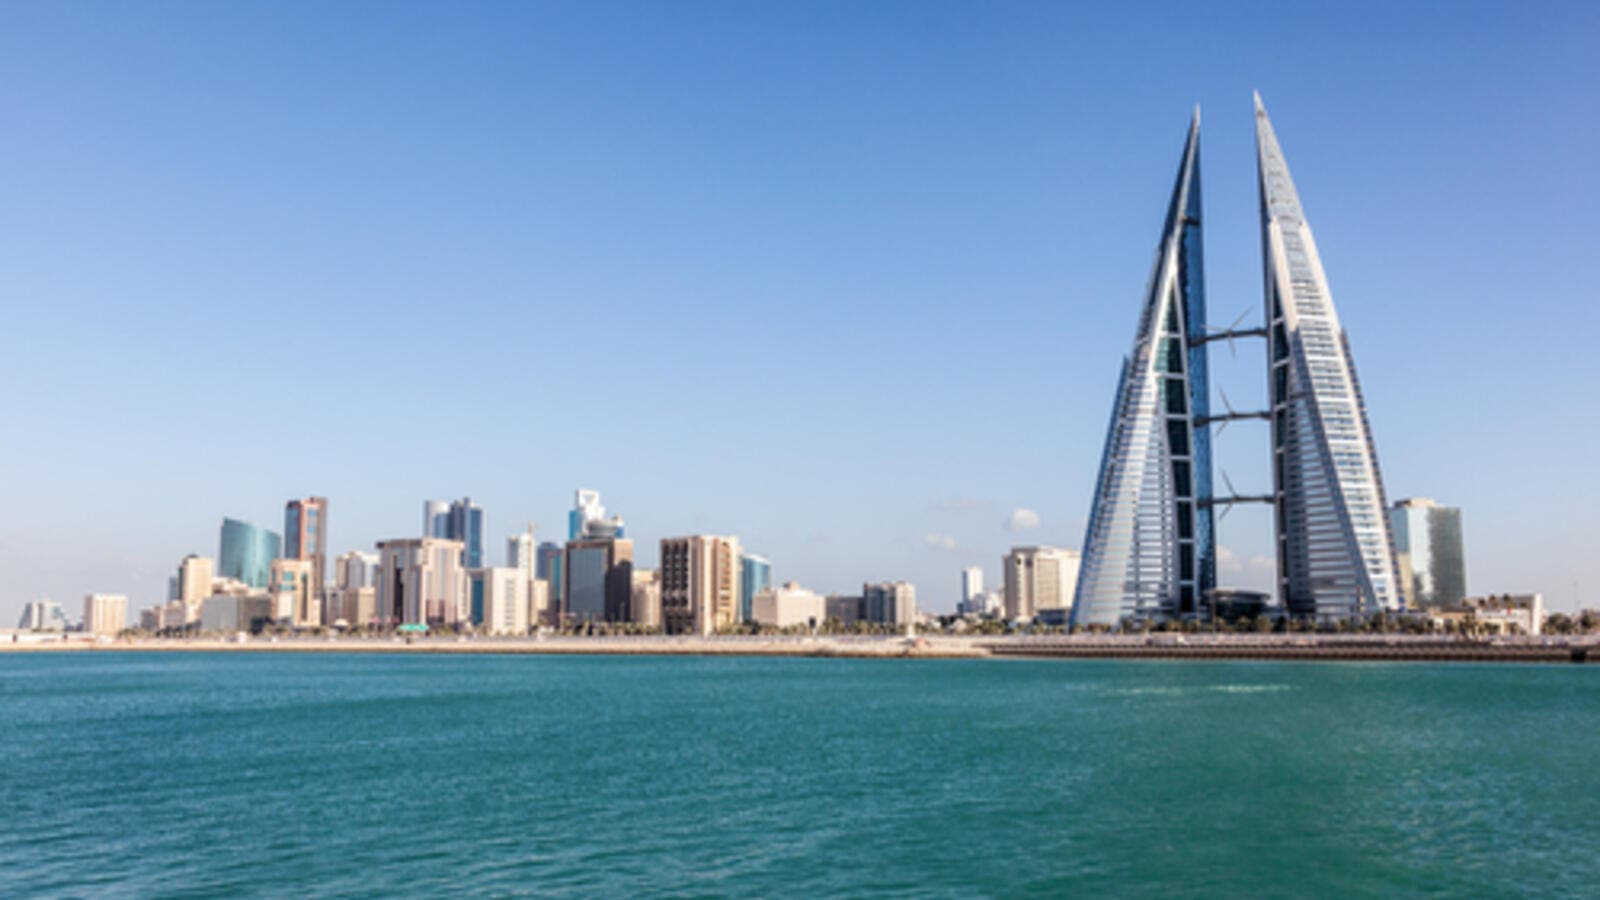 Most expats in the region agree that it is not necessary to speak Arabic to get by in everyday life, especially in Bahrain, Oman, and the UAE, where Arabic and English are the main business languages. (File photo)